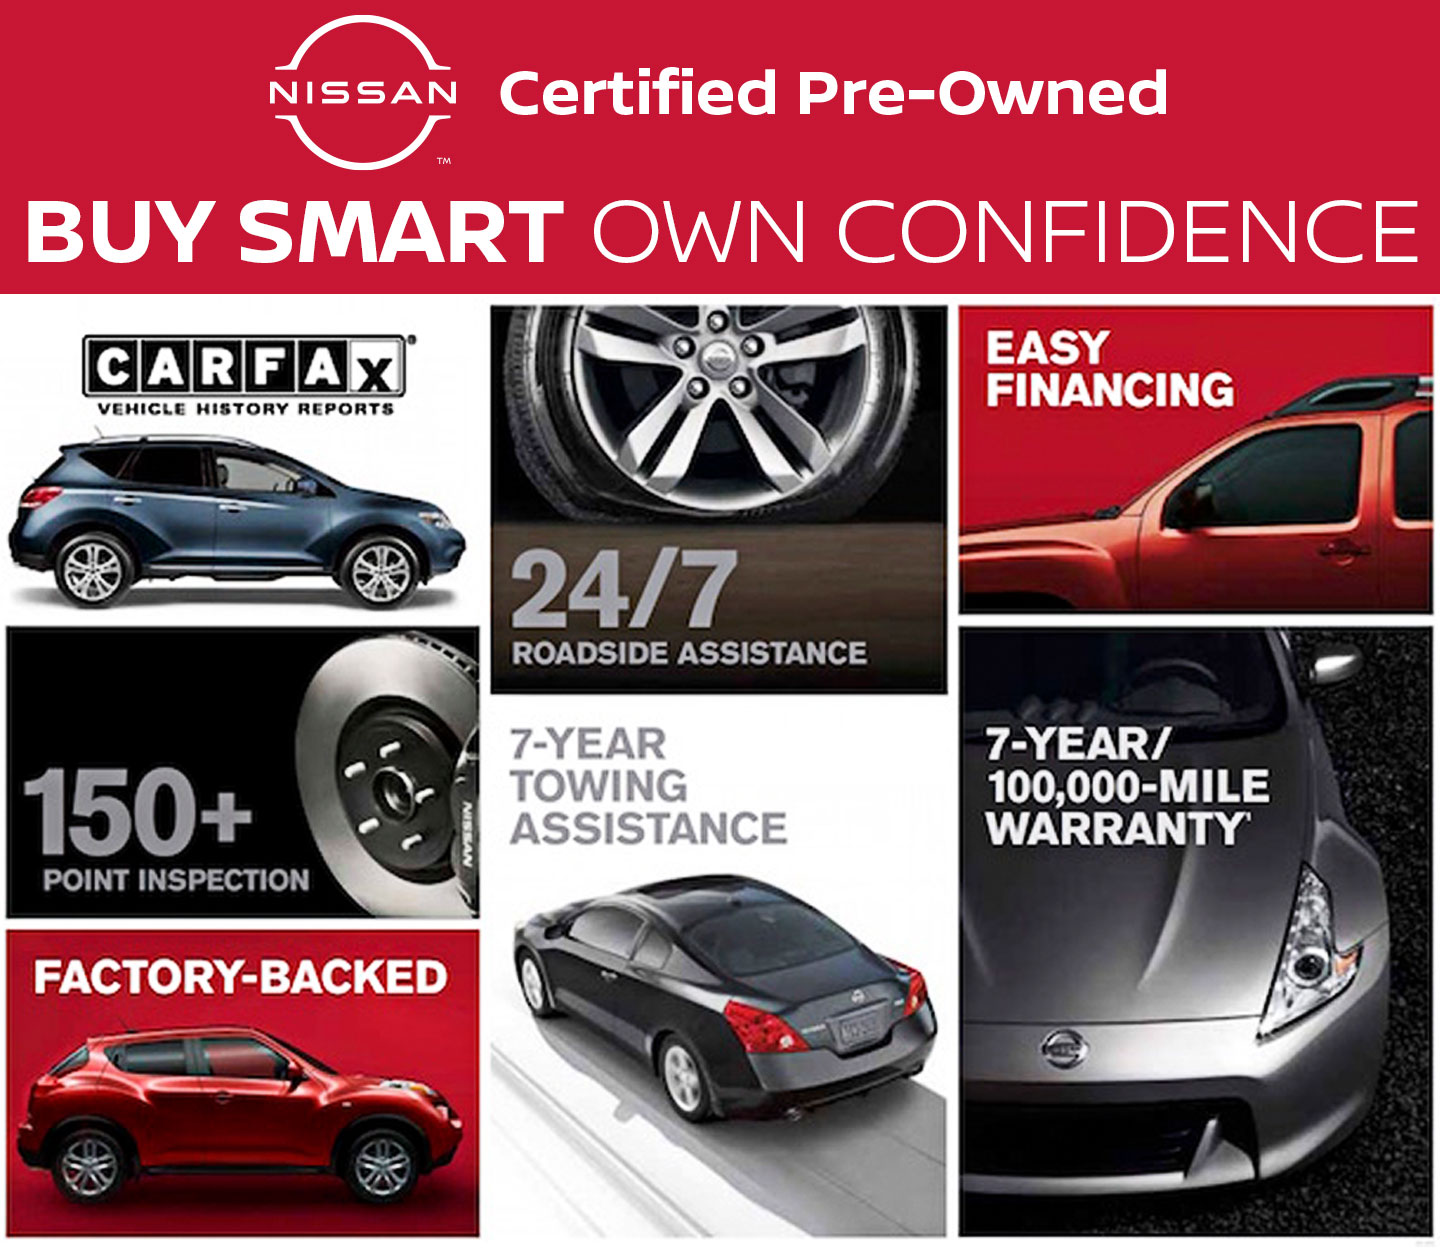 Buy Smart Own Confidence